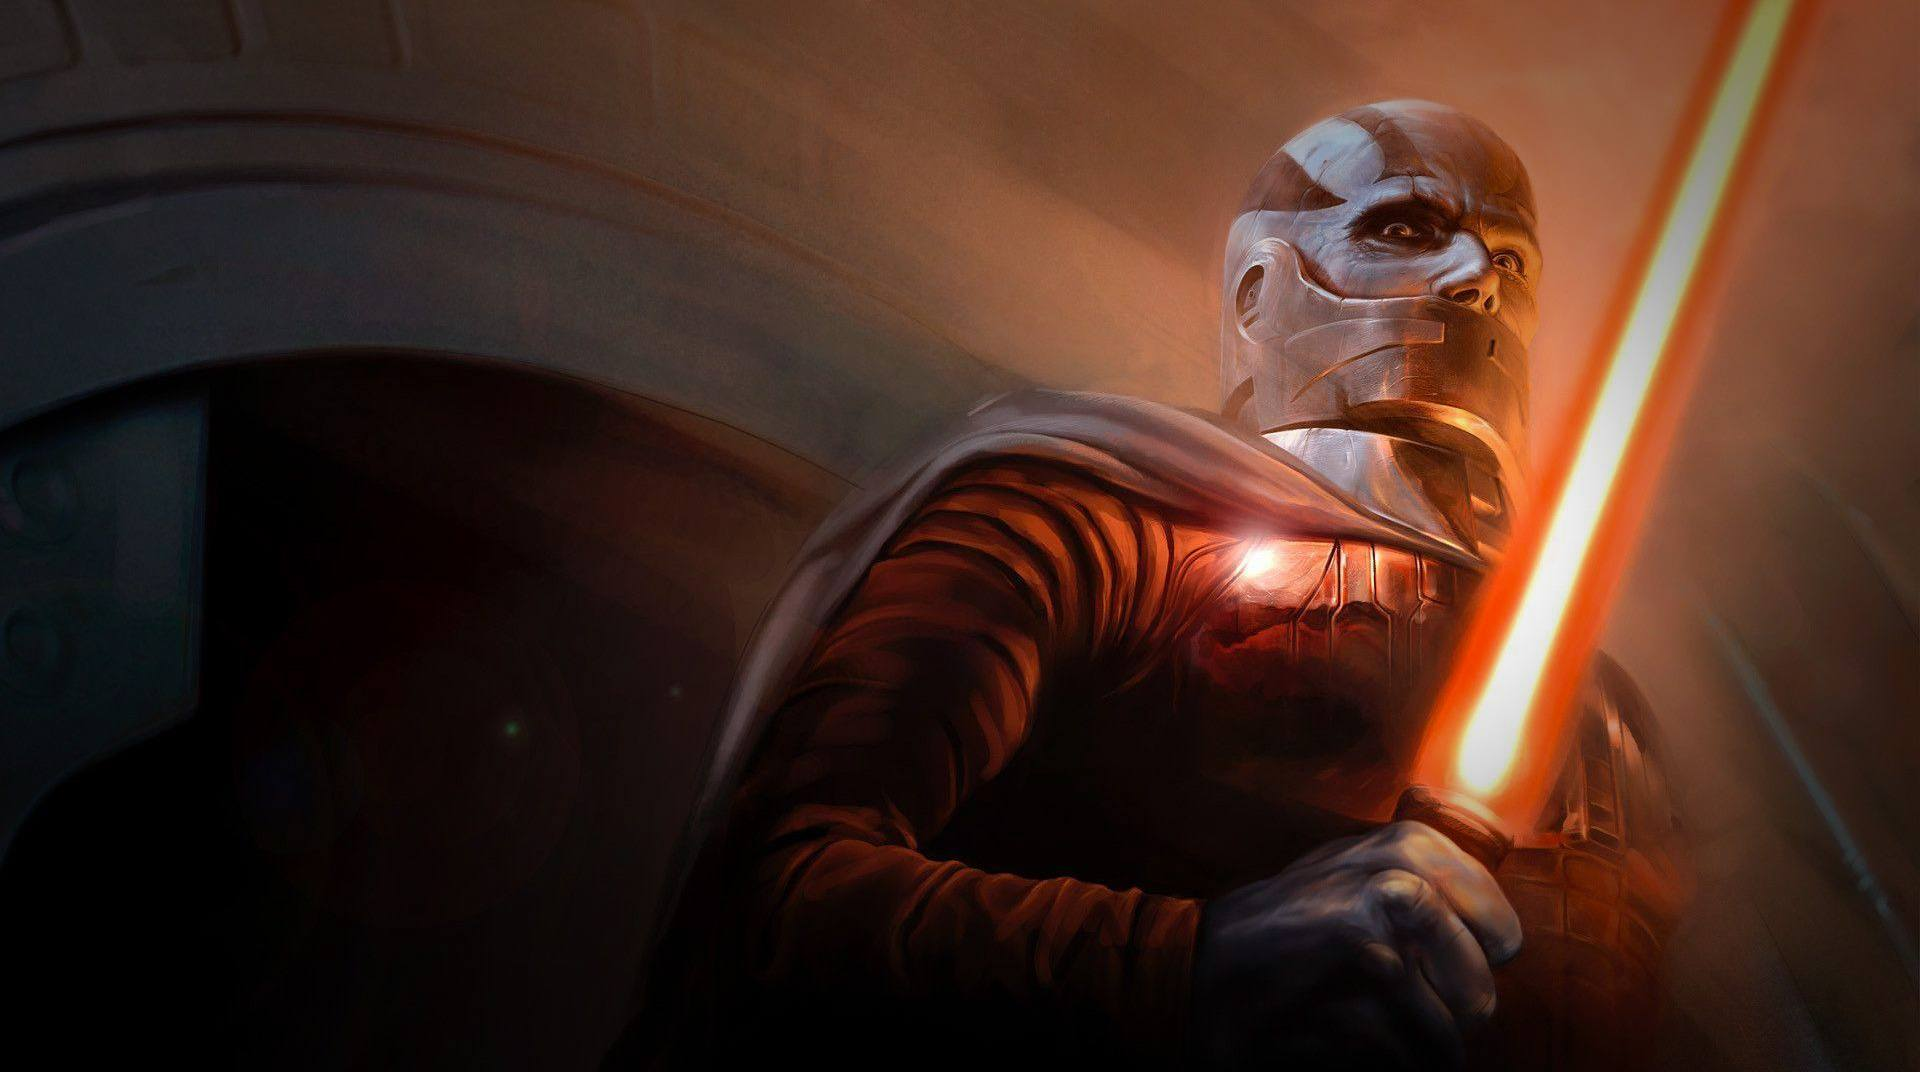 Download Star Wars Knights of the Old Republic on PC with